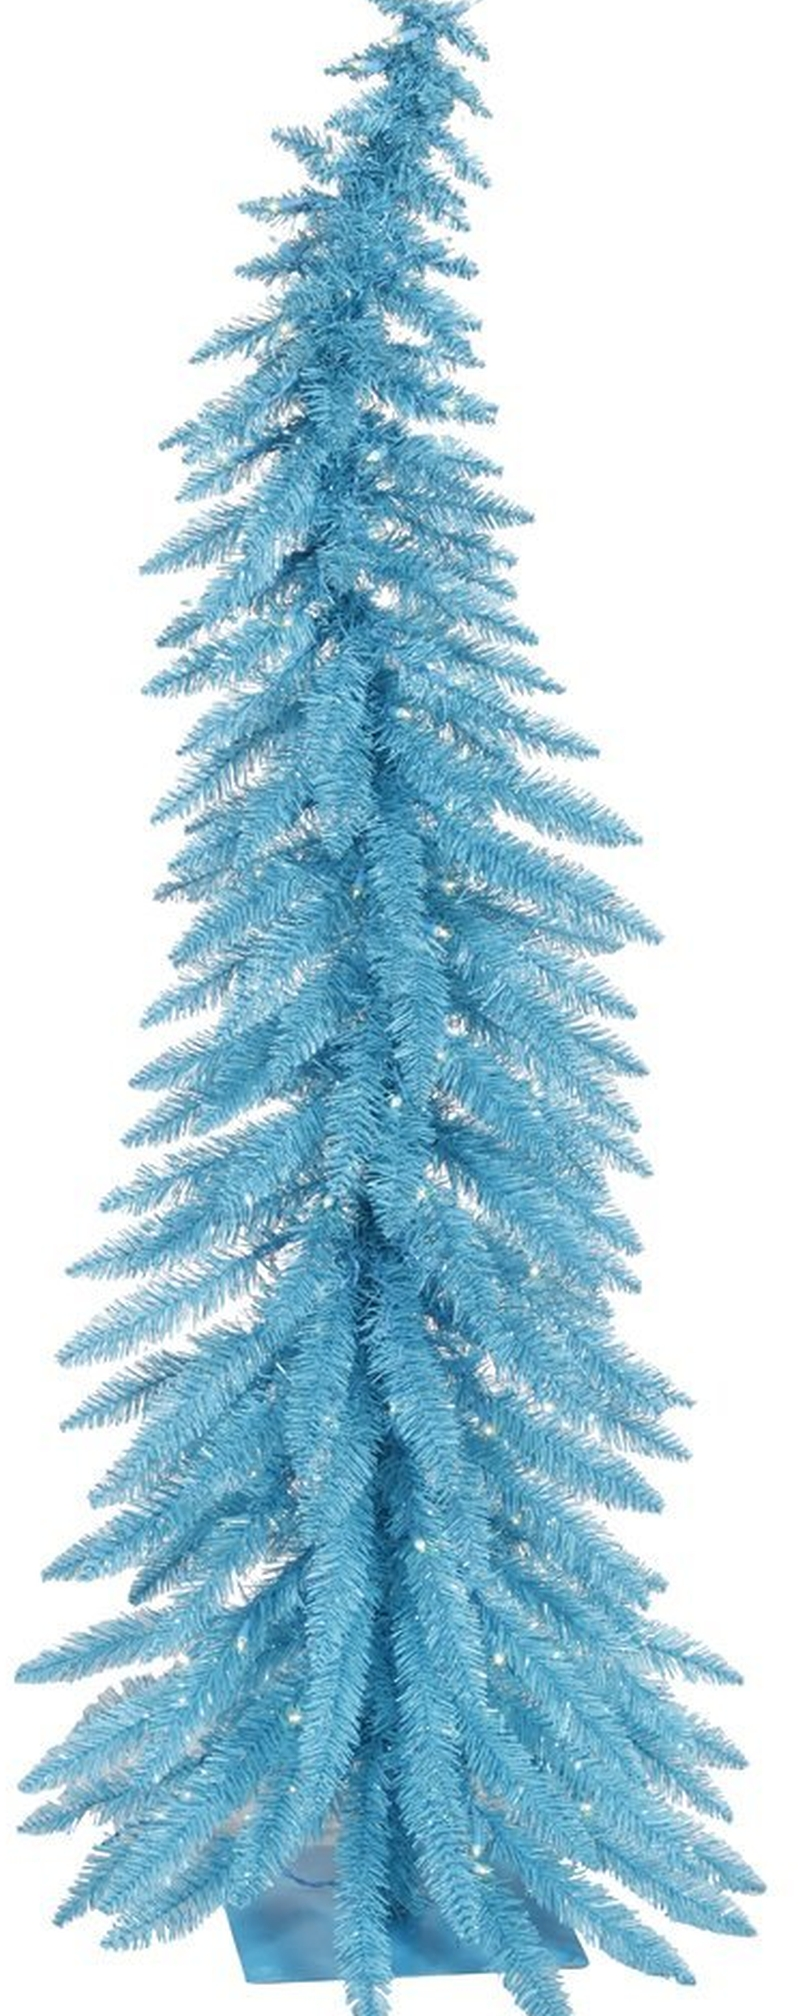 Sky Blue Lights Christmas Tree